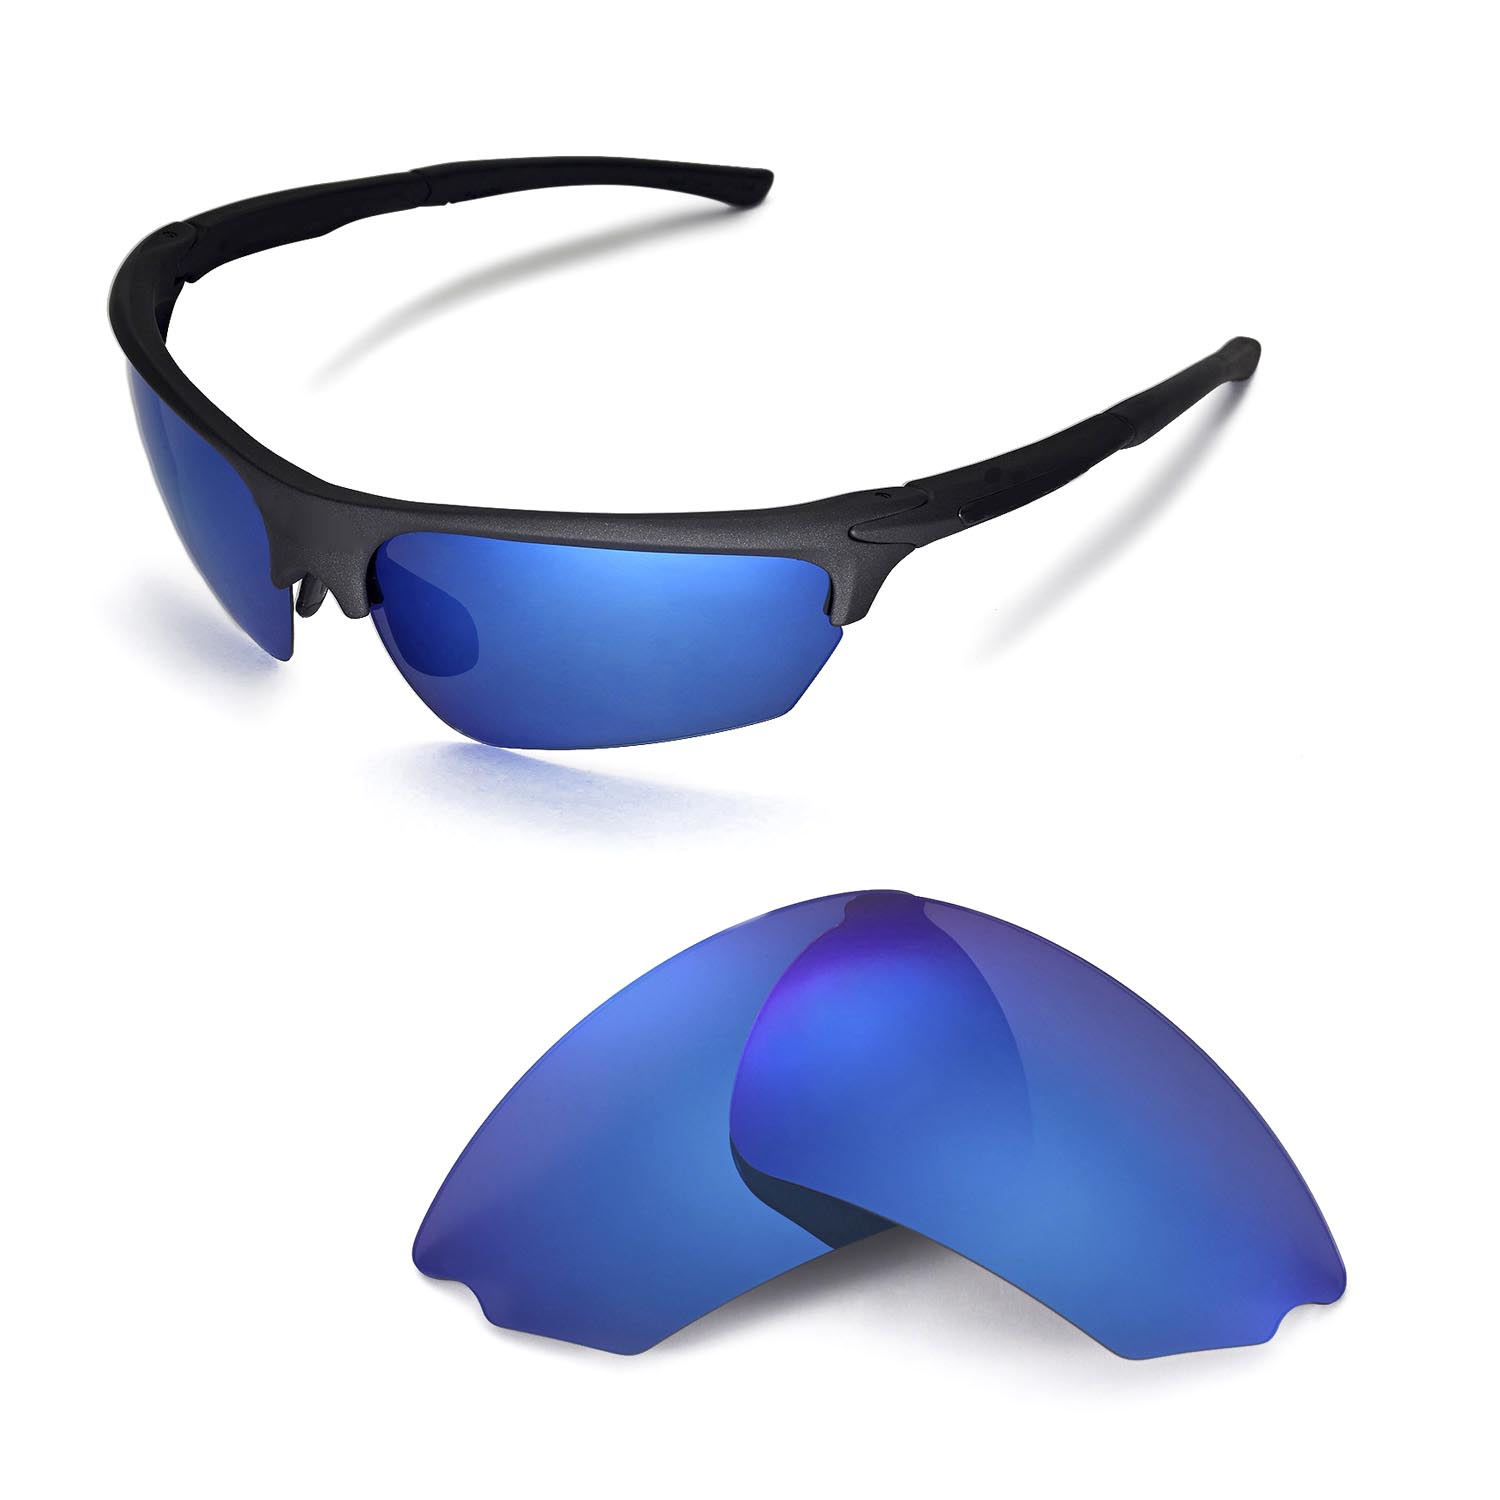 c0a6e95742 Details about New Walleva Polarized Ice Blue Lenses For Rudy Project Noyz  Sunglasses